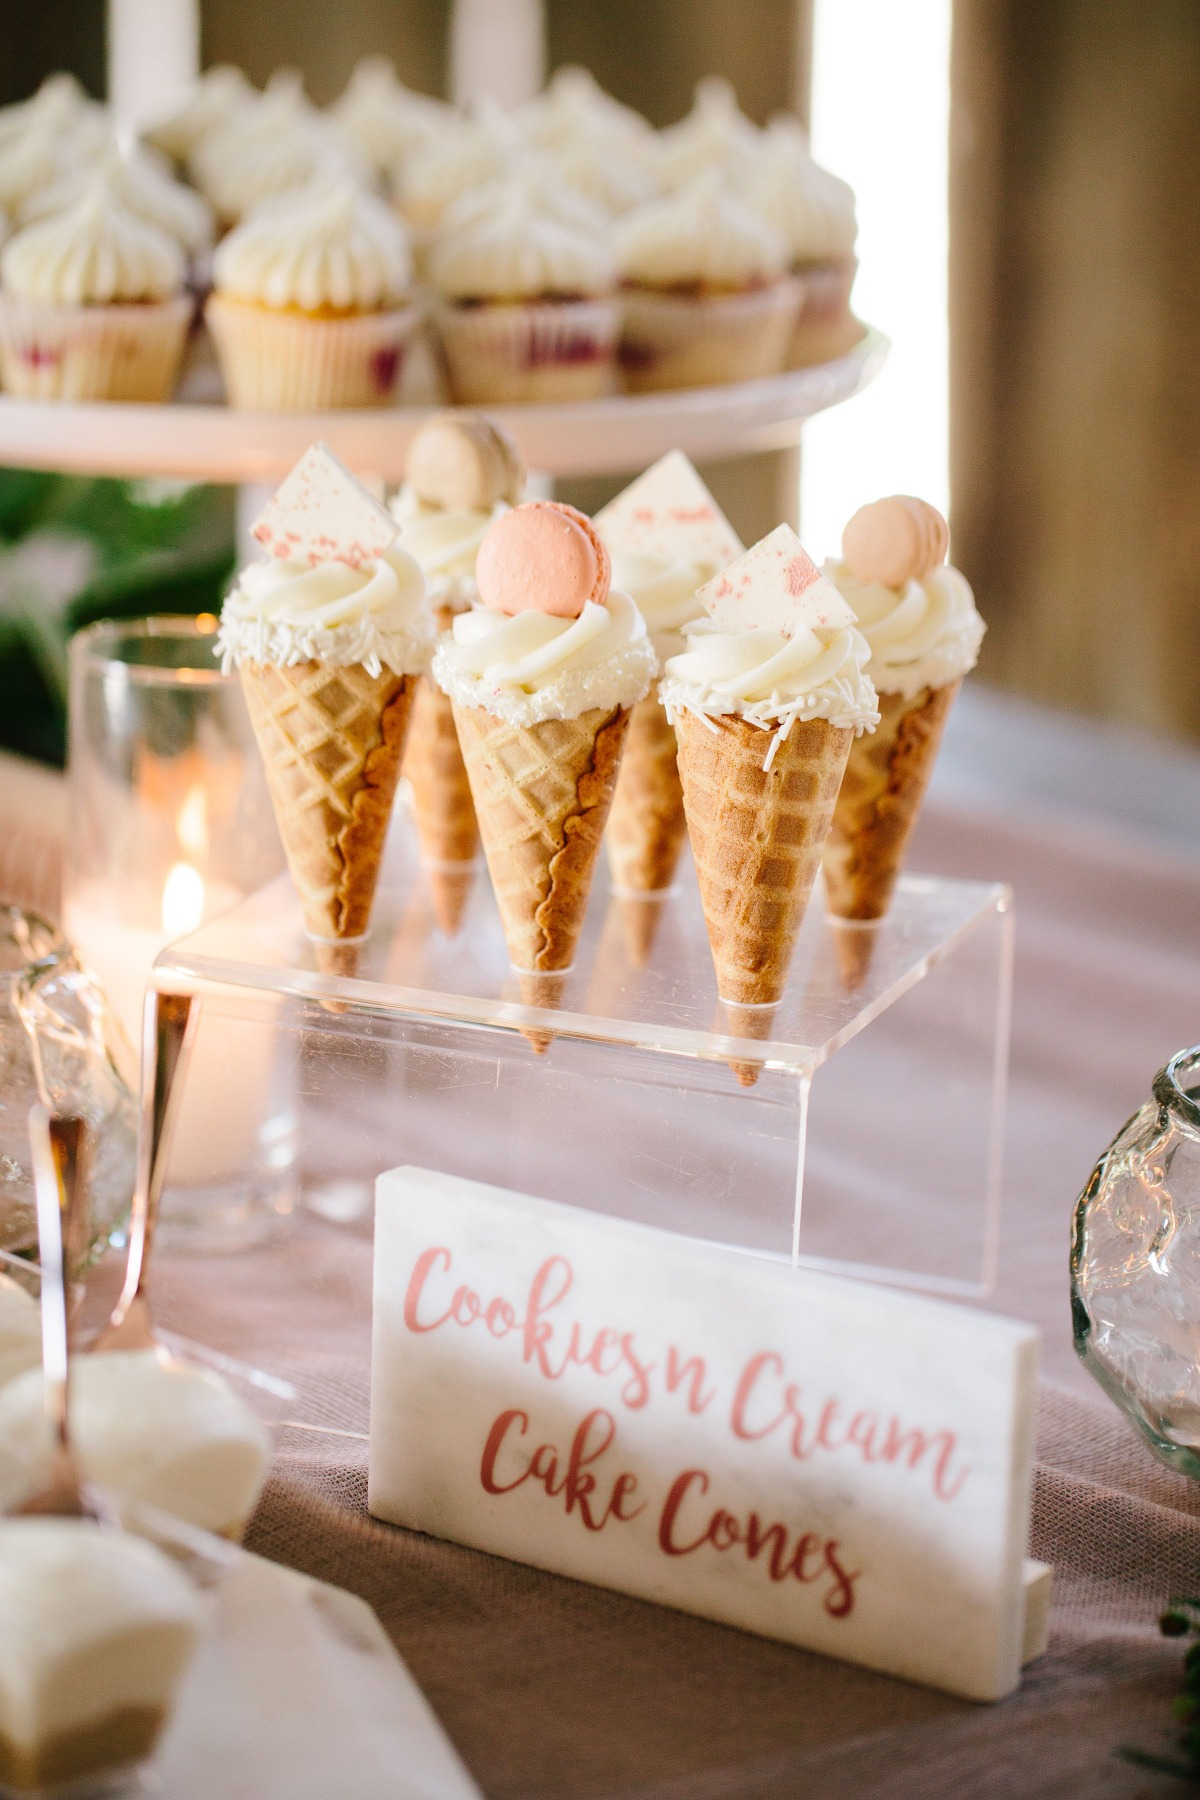 Wedding cake cones